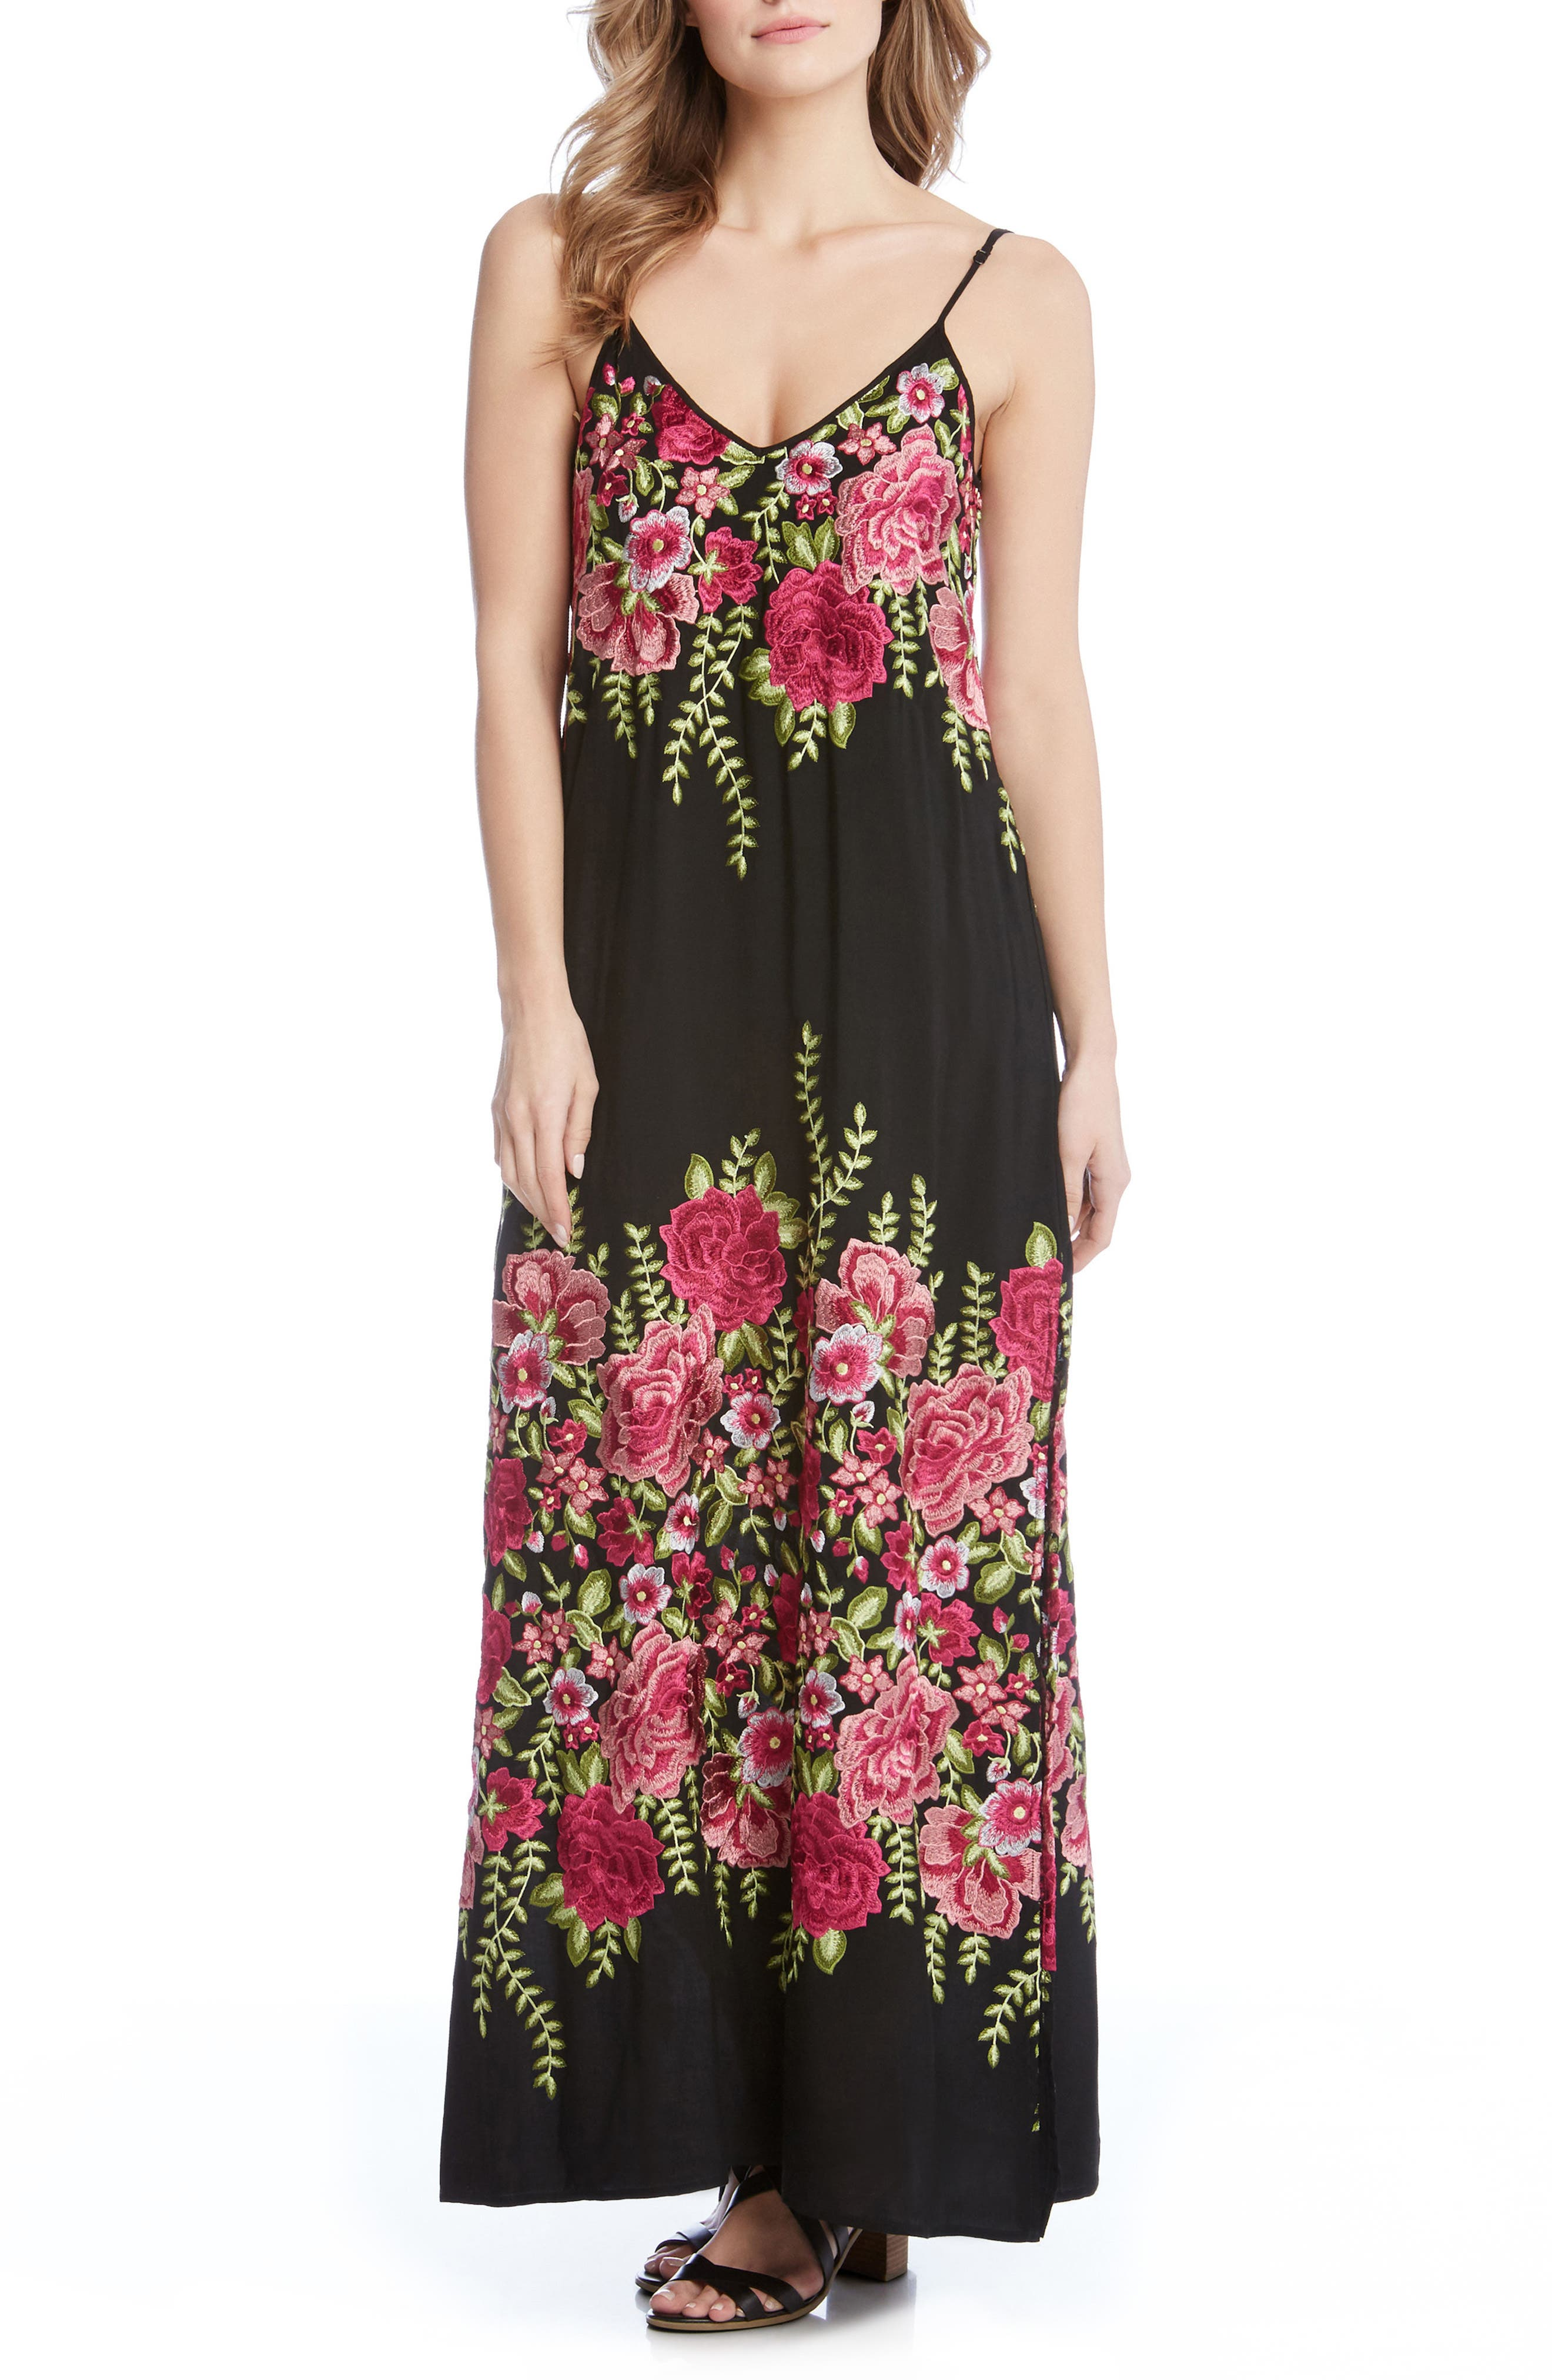 Floral Embroidered Maxi Dress,                             Main thumbnail 1, color,                             Black/ Embroidery